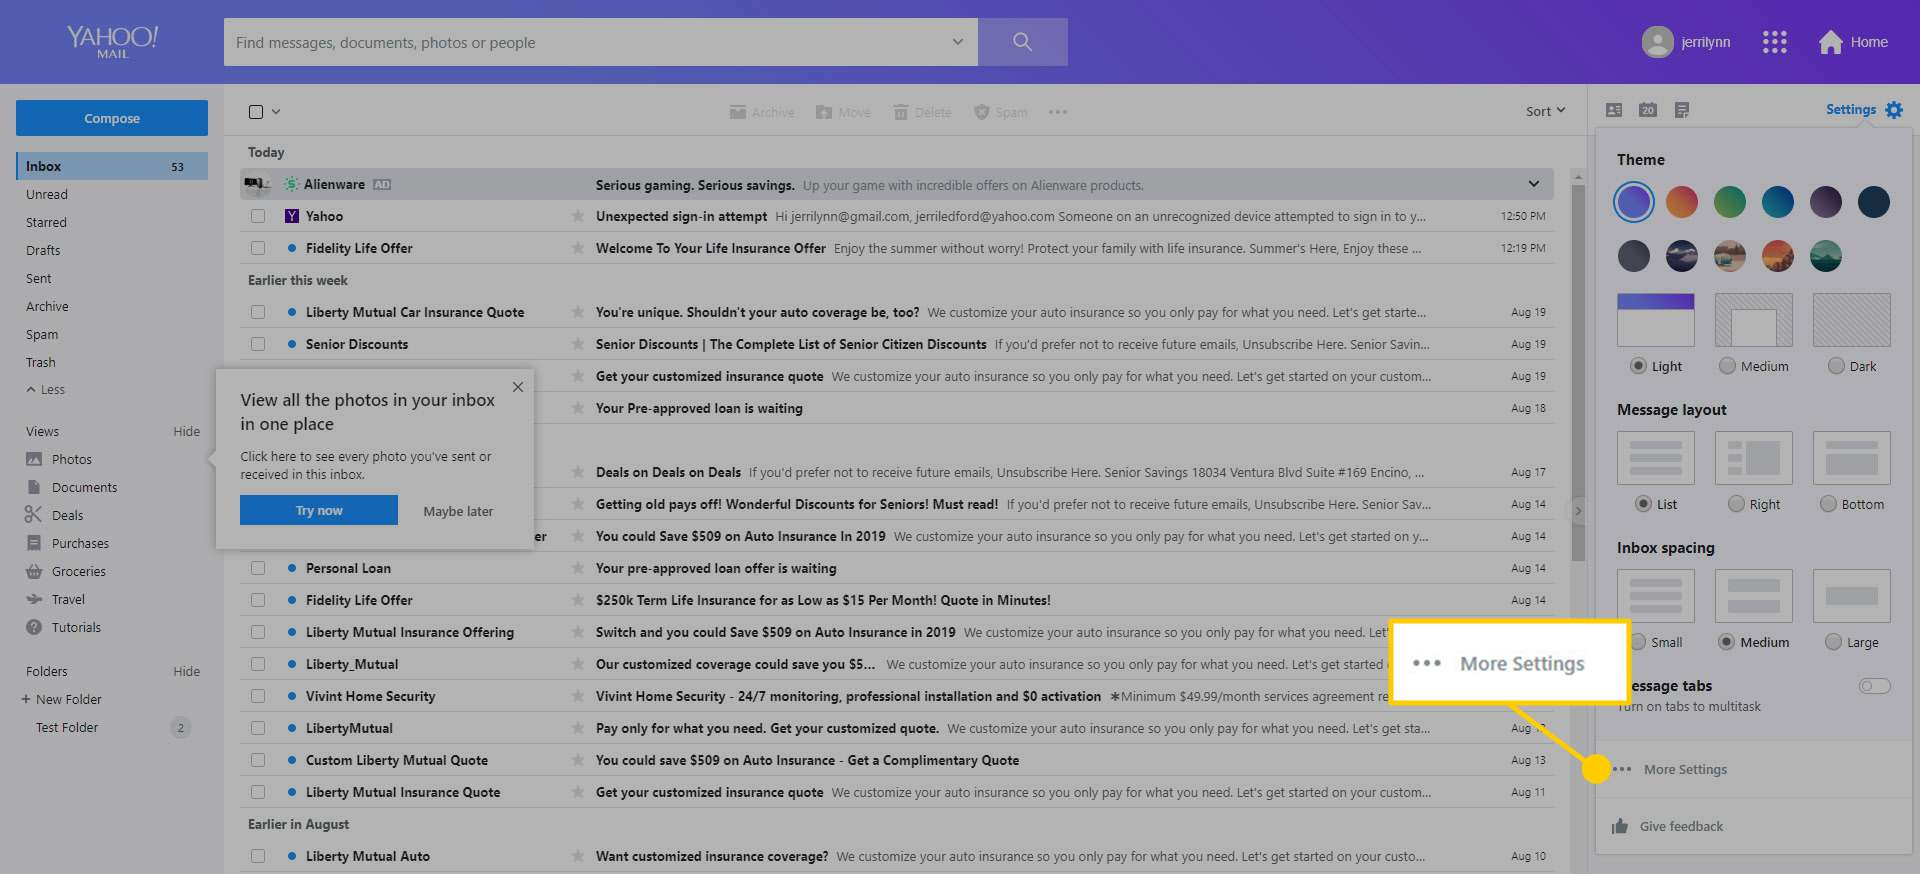 A screenshot of the More Settings option in Yahoo! Mail